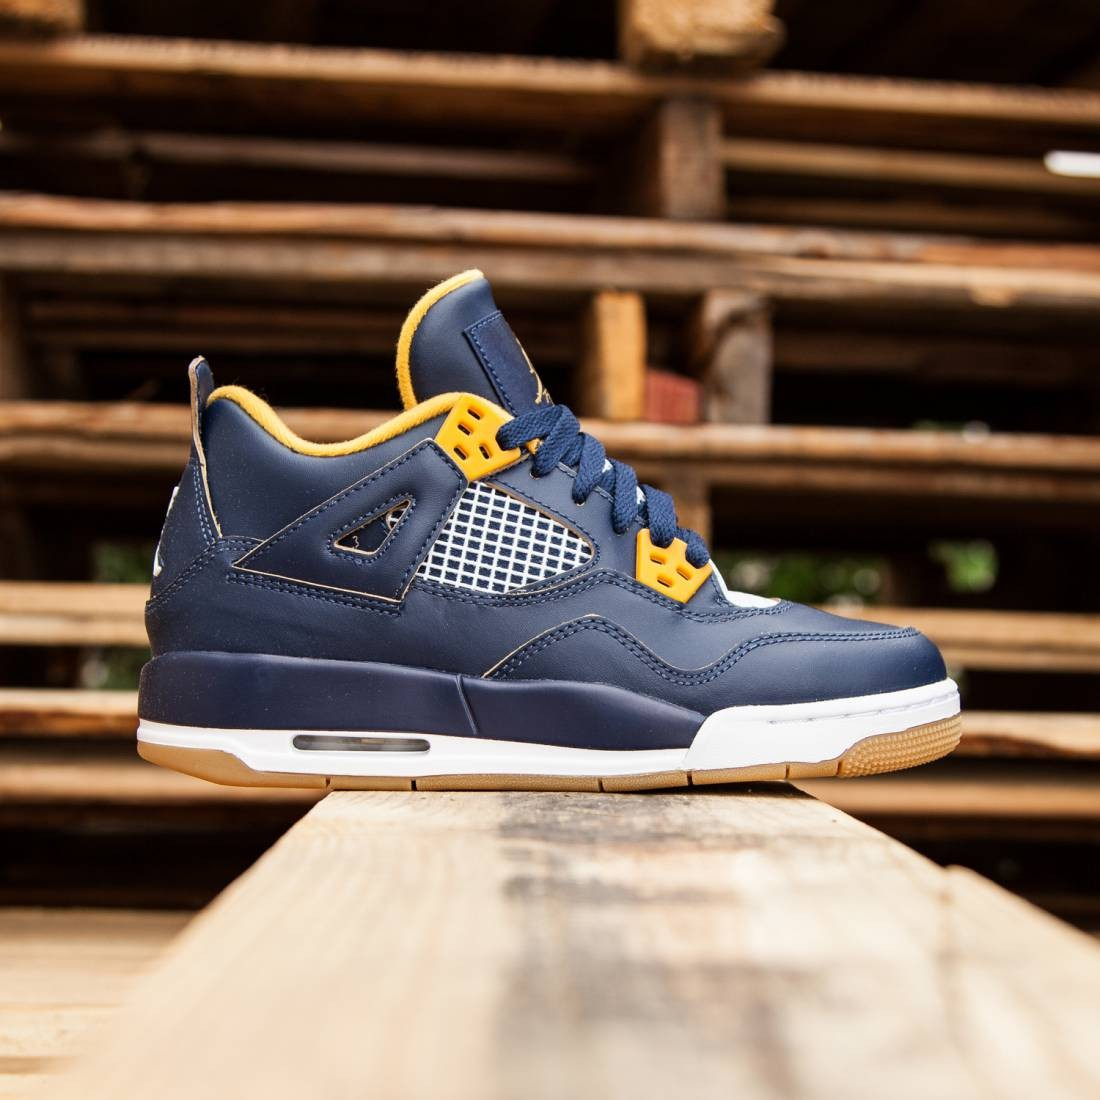 wholesale dealer aac33 05e43 Jordan Big Kids Air Jordan IV Retro GS Dunk From Above (midnight navy gold  leaf white mtlc gold star)